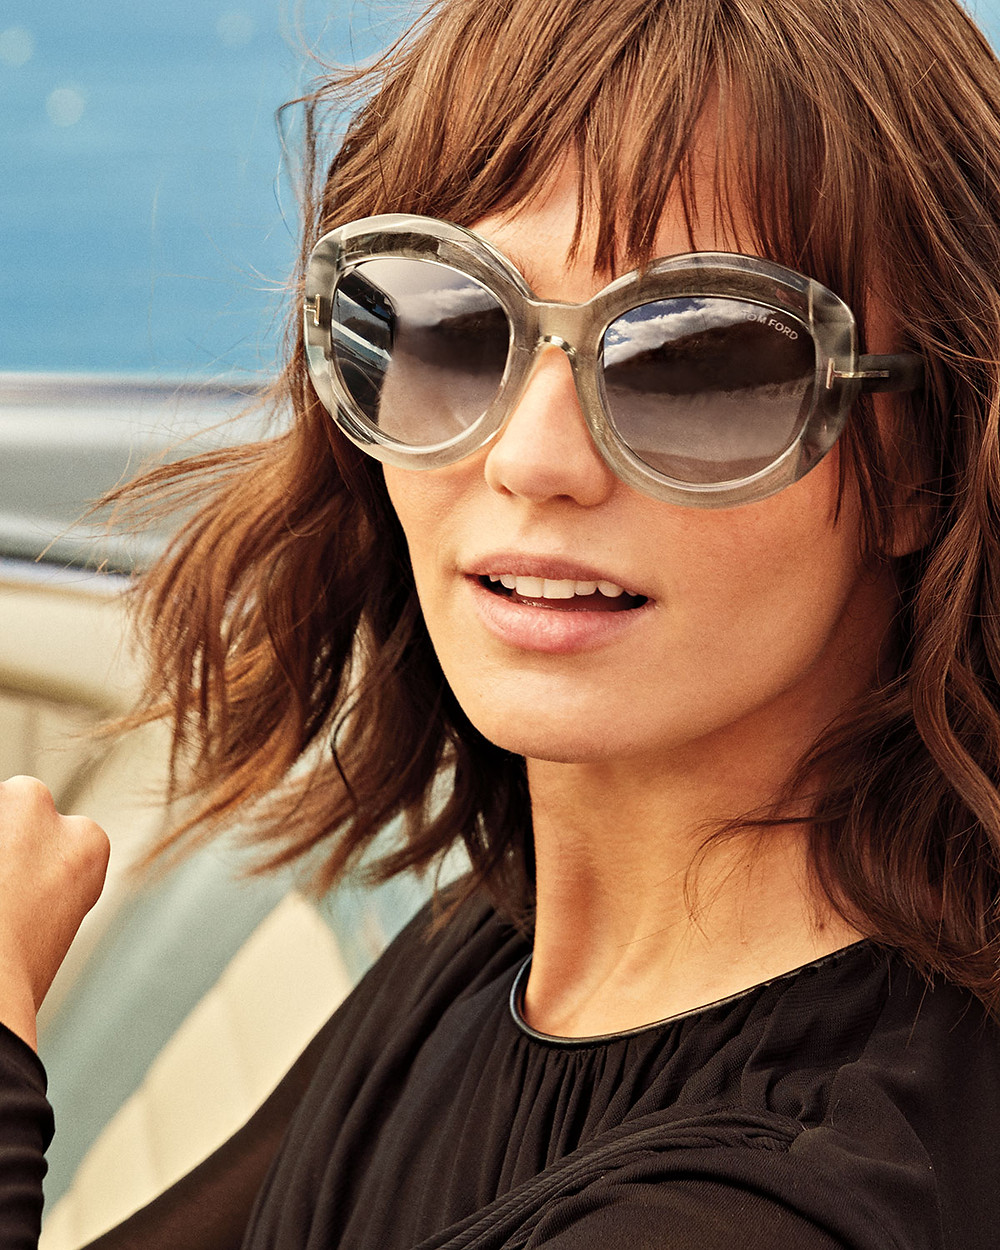 Tom Ford Bianca Two-Tone Acetate Gradient Sunglasses, Champagne $445